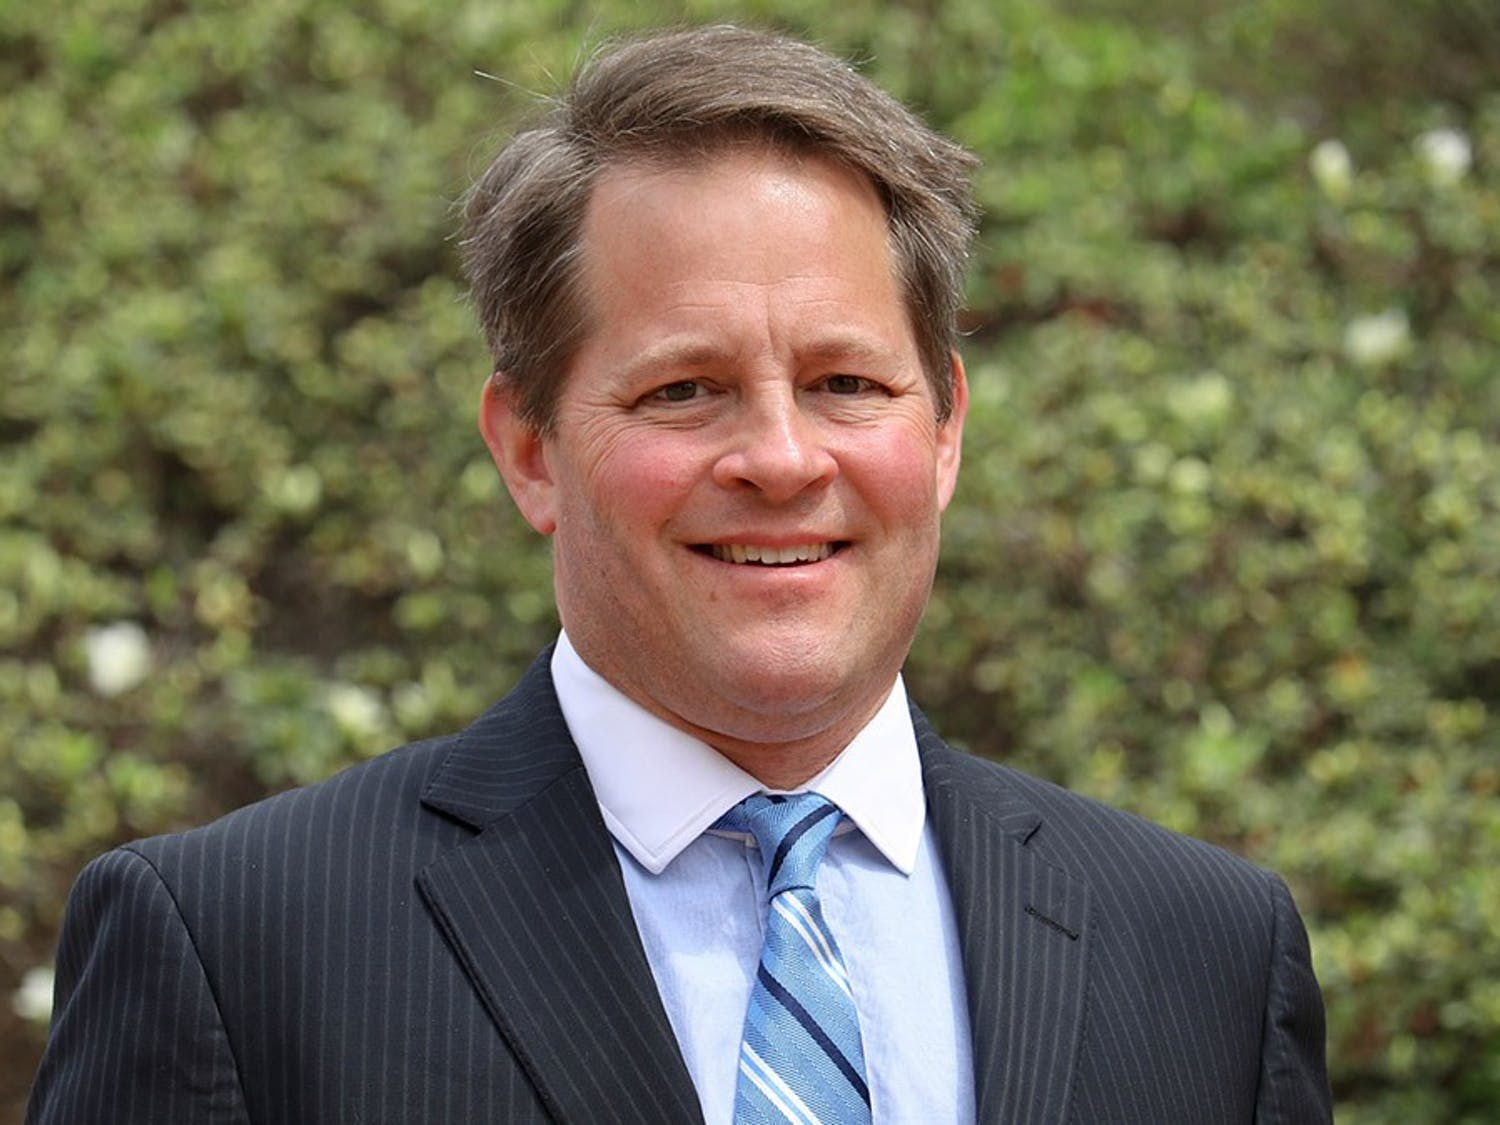 UNC announced on Wednesday, Sept. 2, 2020 that Mike Piehler had been named Carolina's chief sustainability officer. Photo courtesy of the UNC Institute for the Environment.